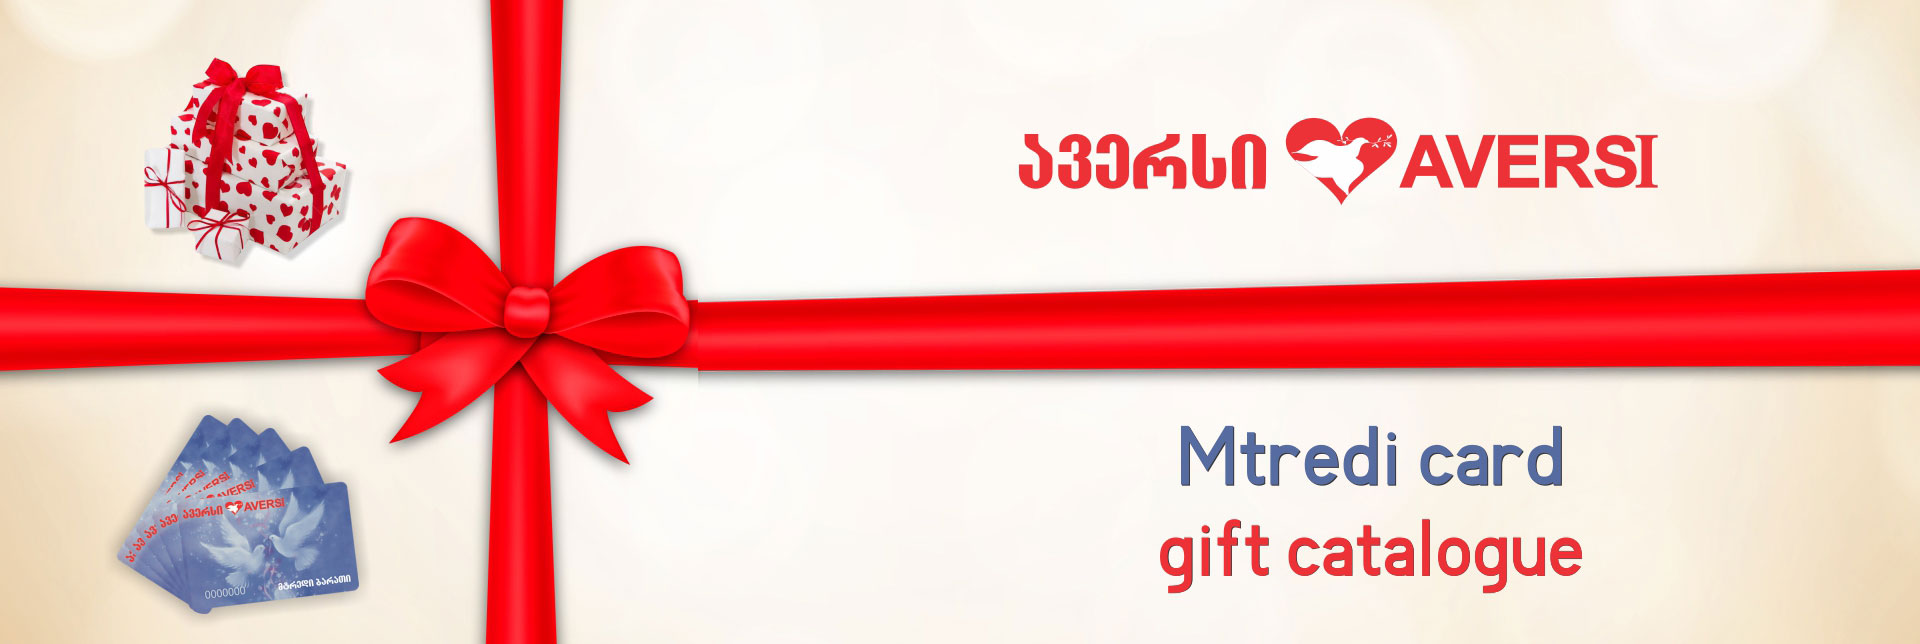 Mtredi card gift catalogue